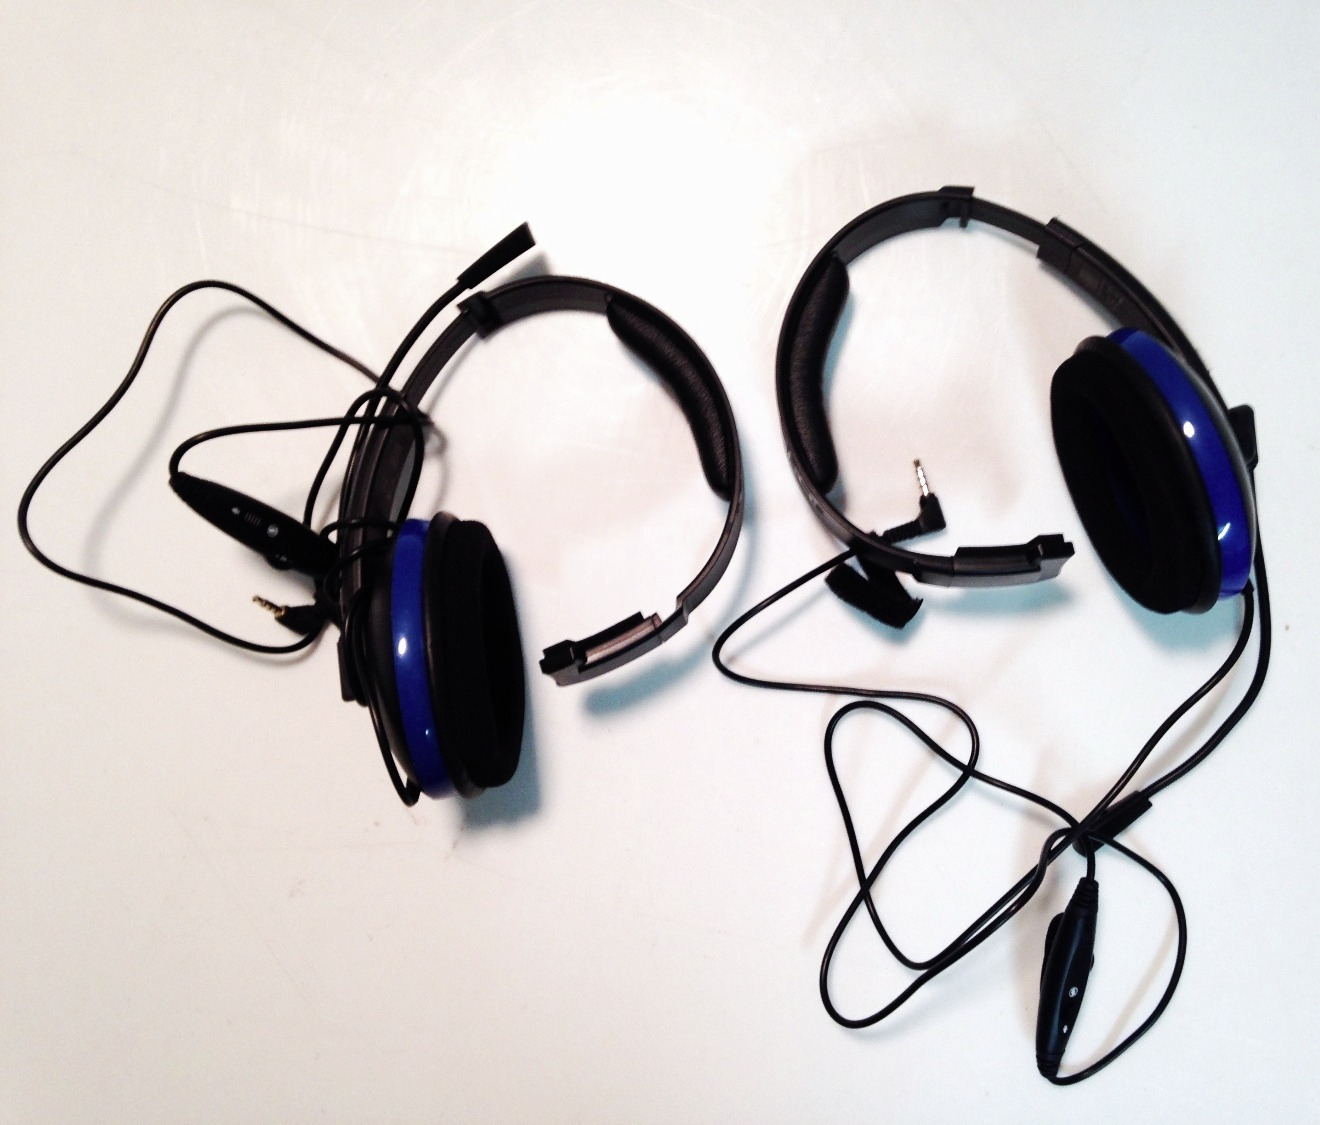 Blue Single Sided Headset